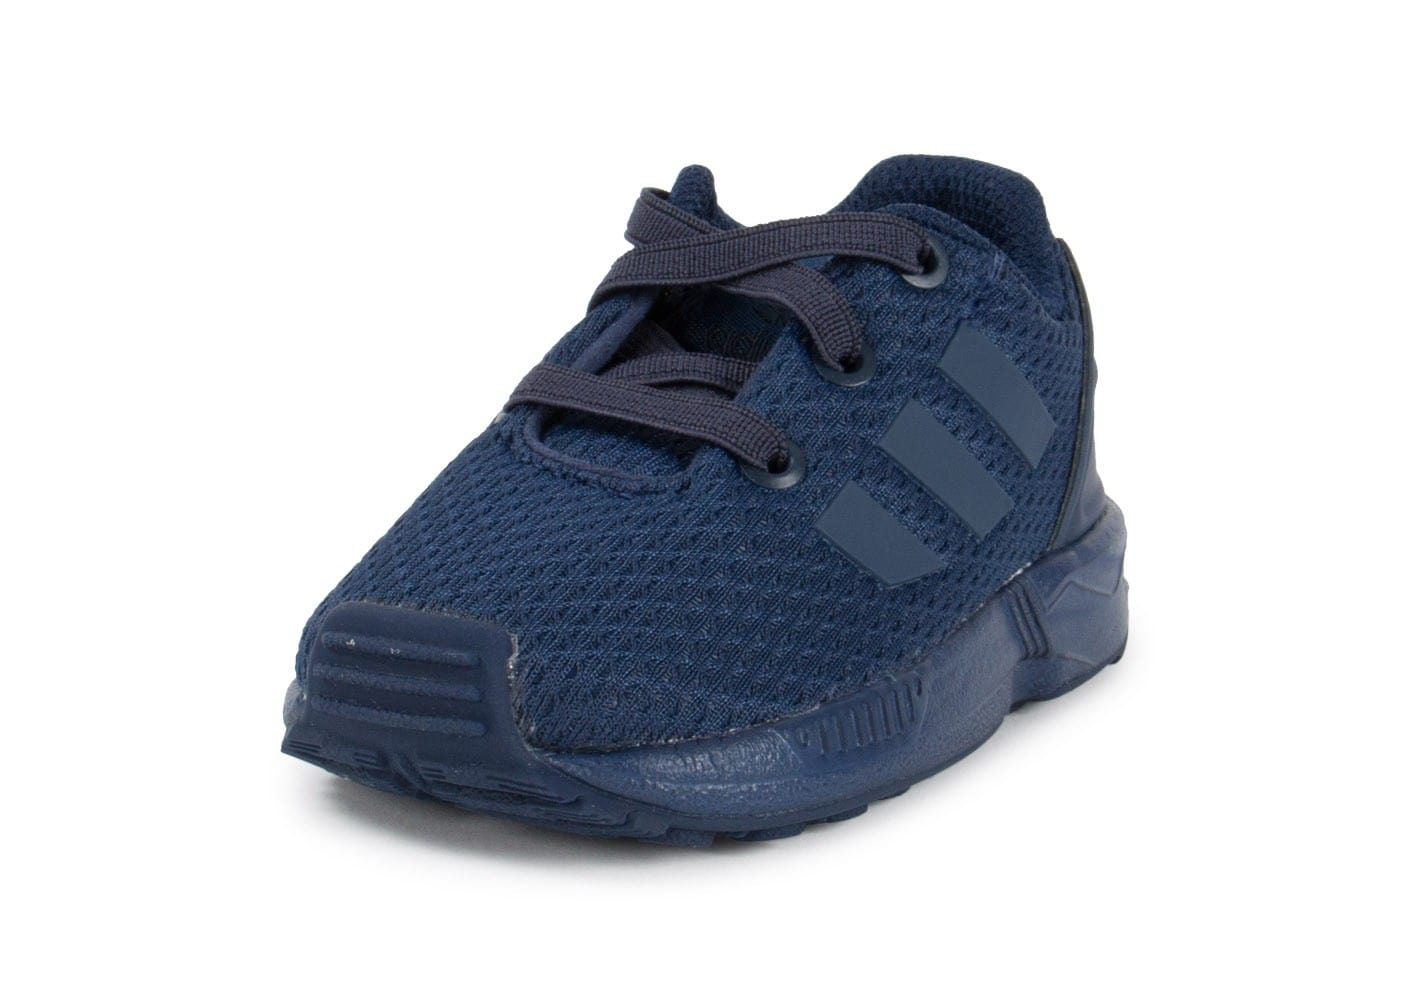 Chaussures Adidas ZX Flux 26 bleues enfant qZMyTG